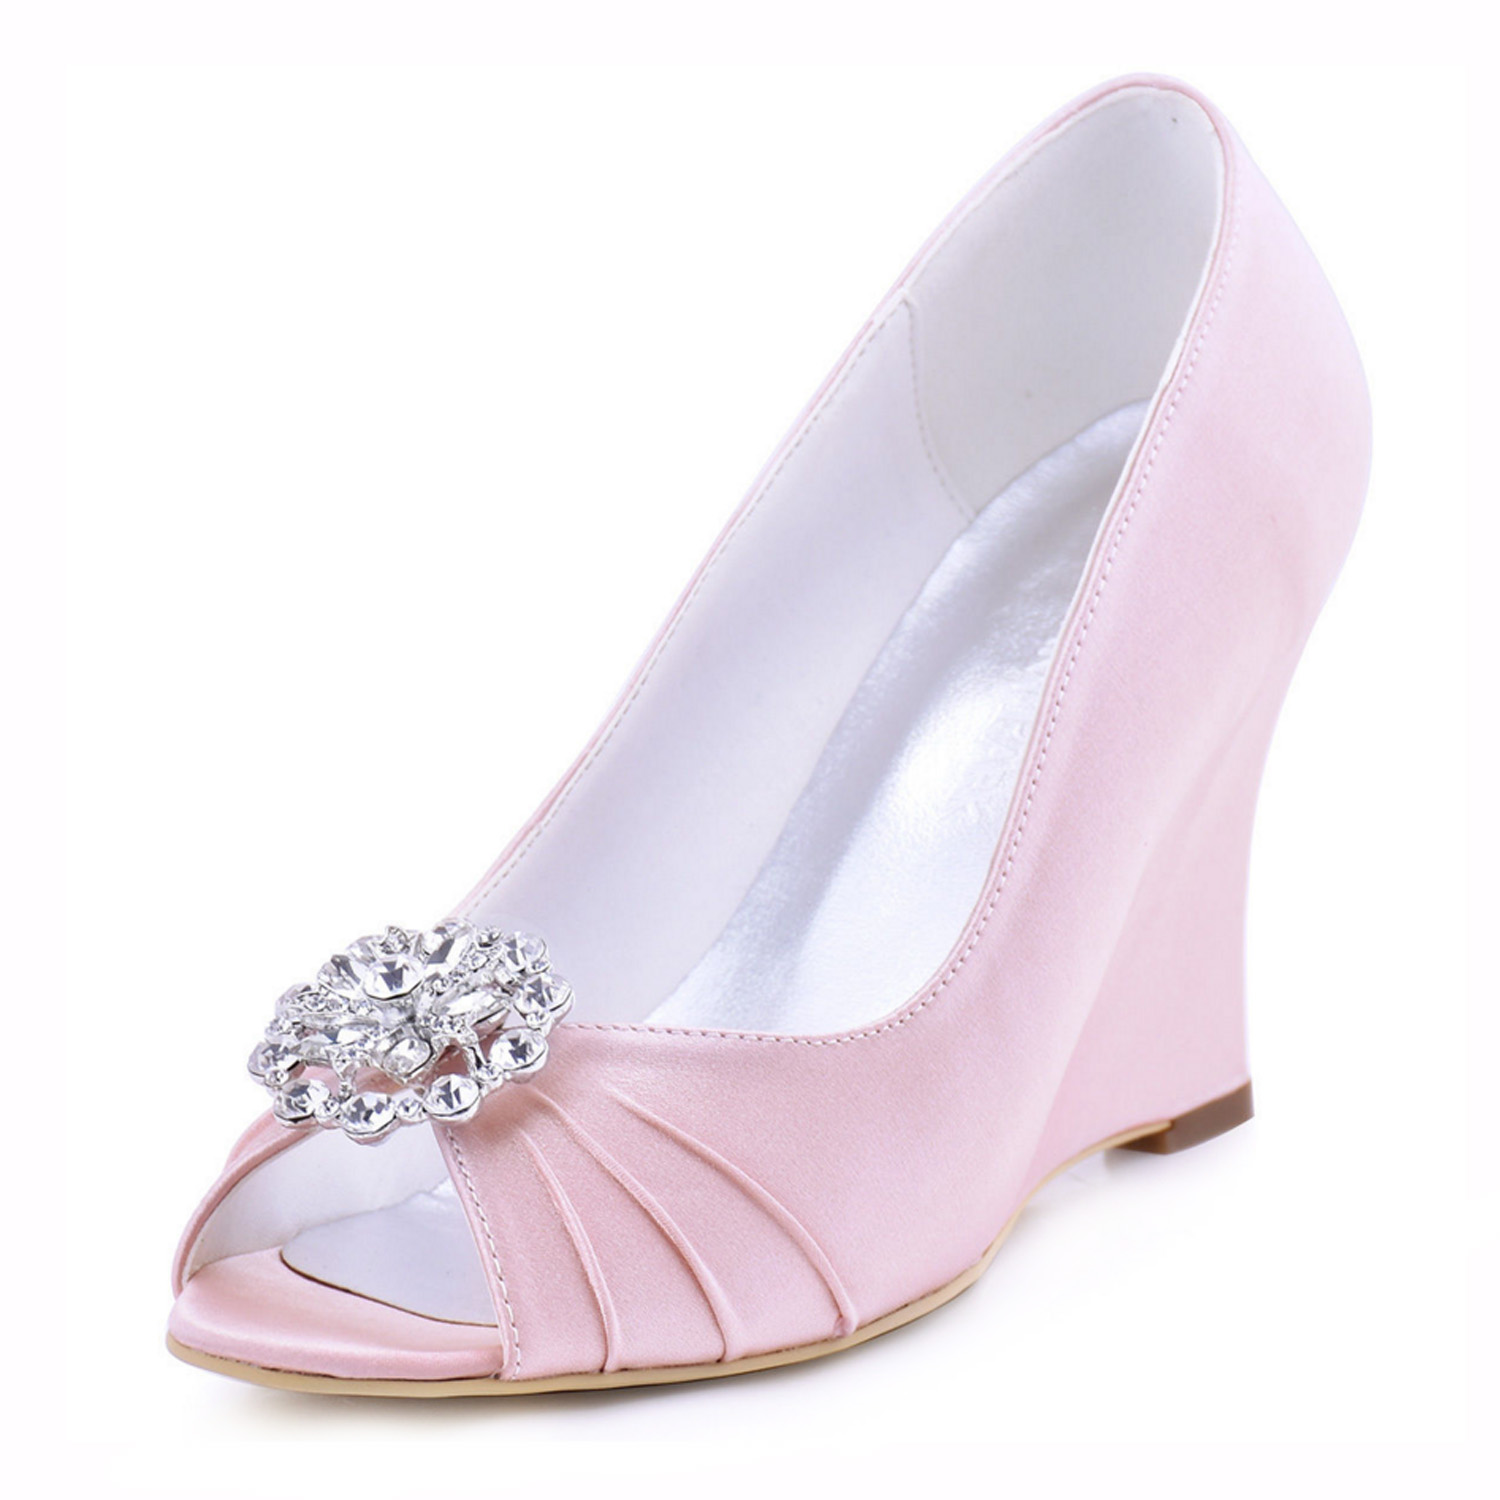 2016 Highly Recommended New Arrival Summer Fashion Sandals Rhinestone Wedding Bridal Dress Shoes<br><br>Aliexpress